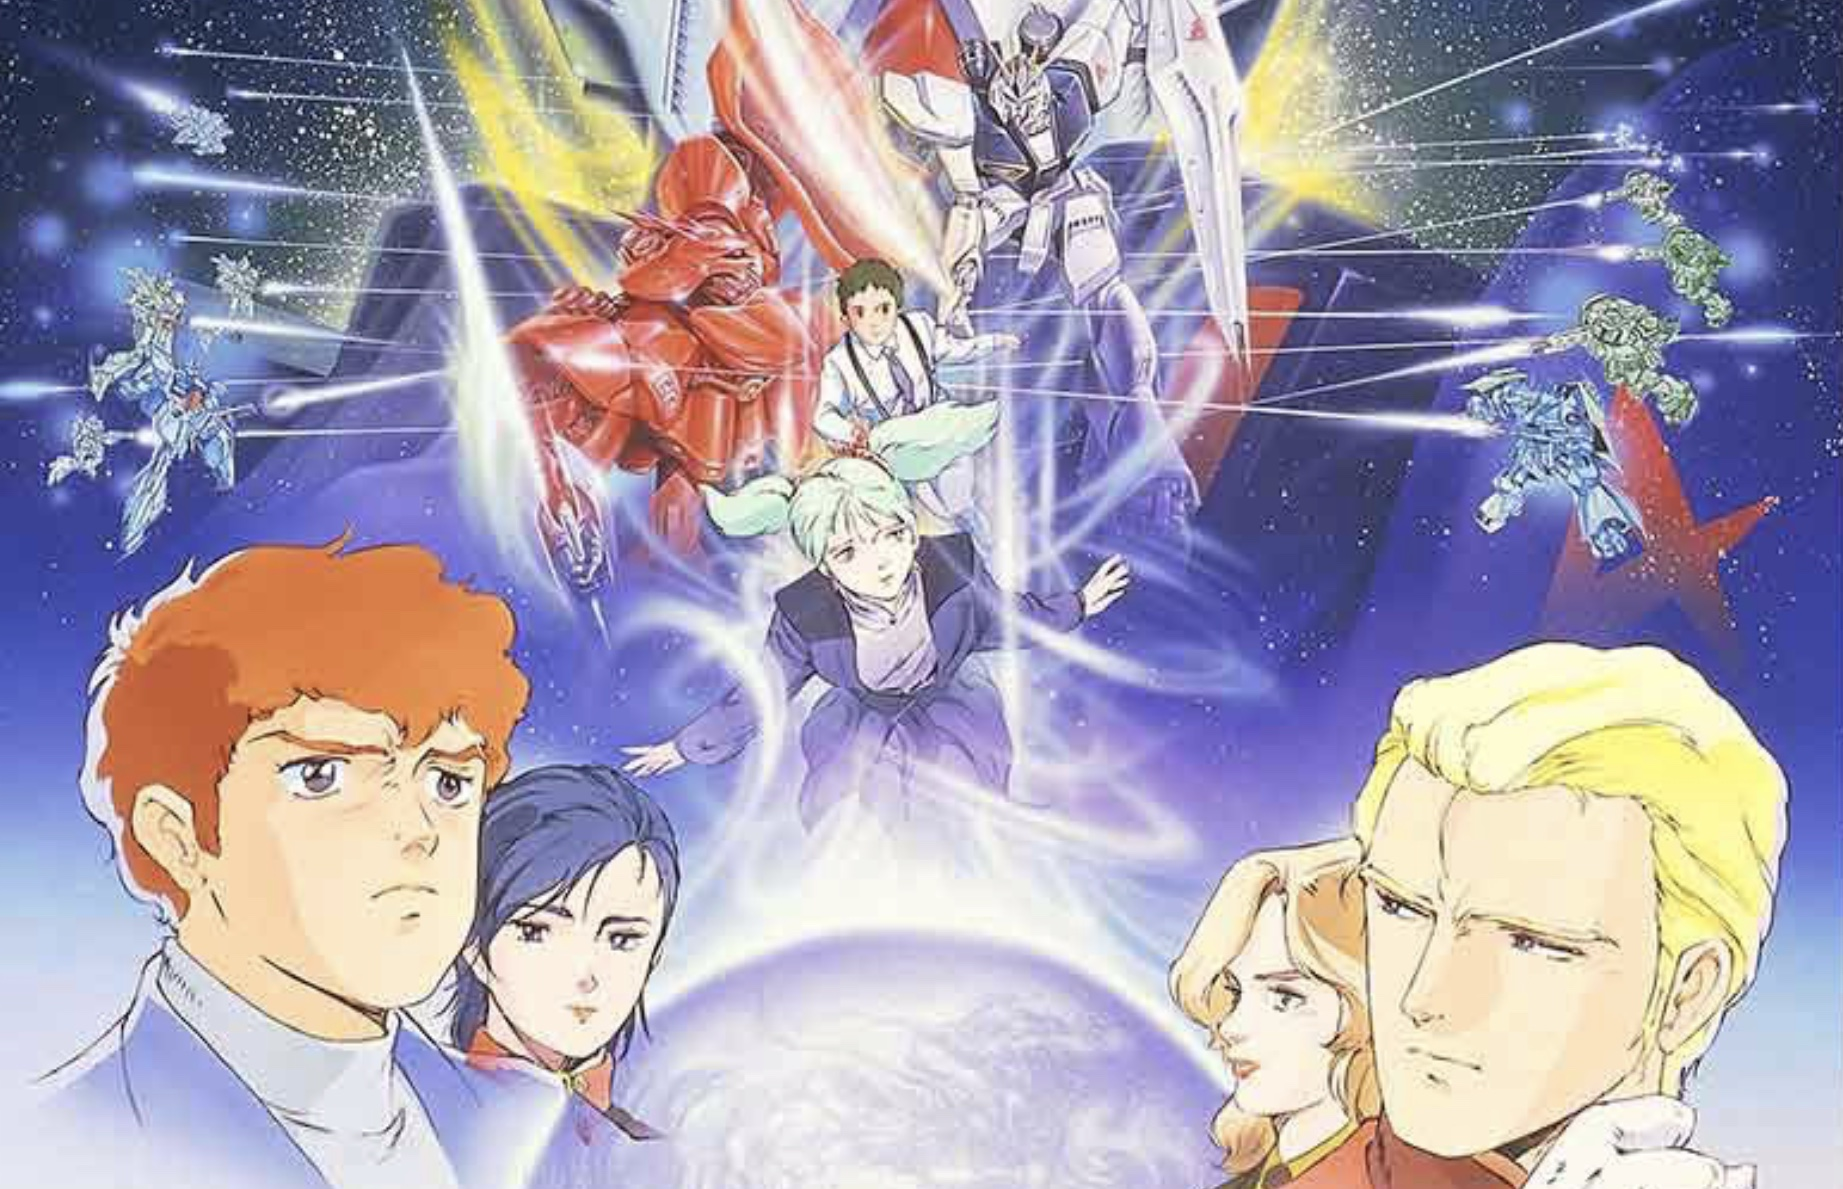 Mobile Suit Gundam Char S Counterattack Coming To Us Cinemas For Franchise 40th Anniversary Otaquest